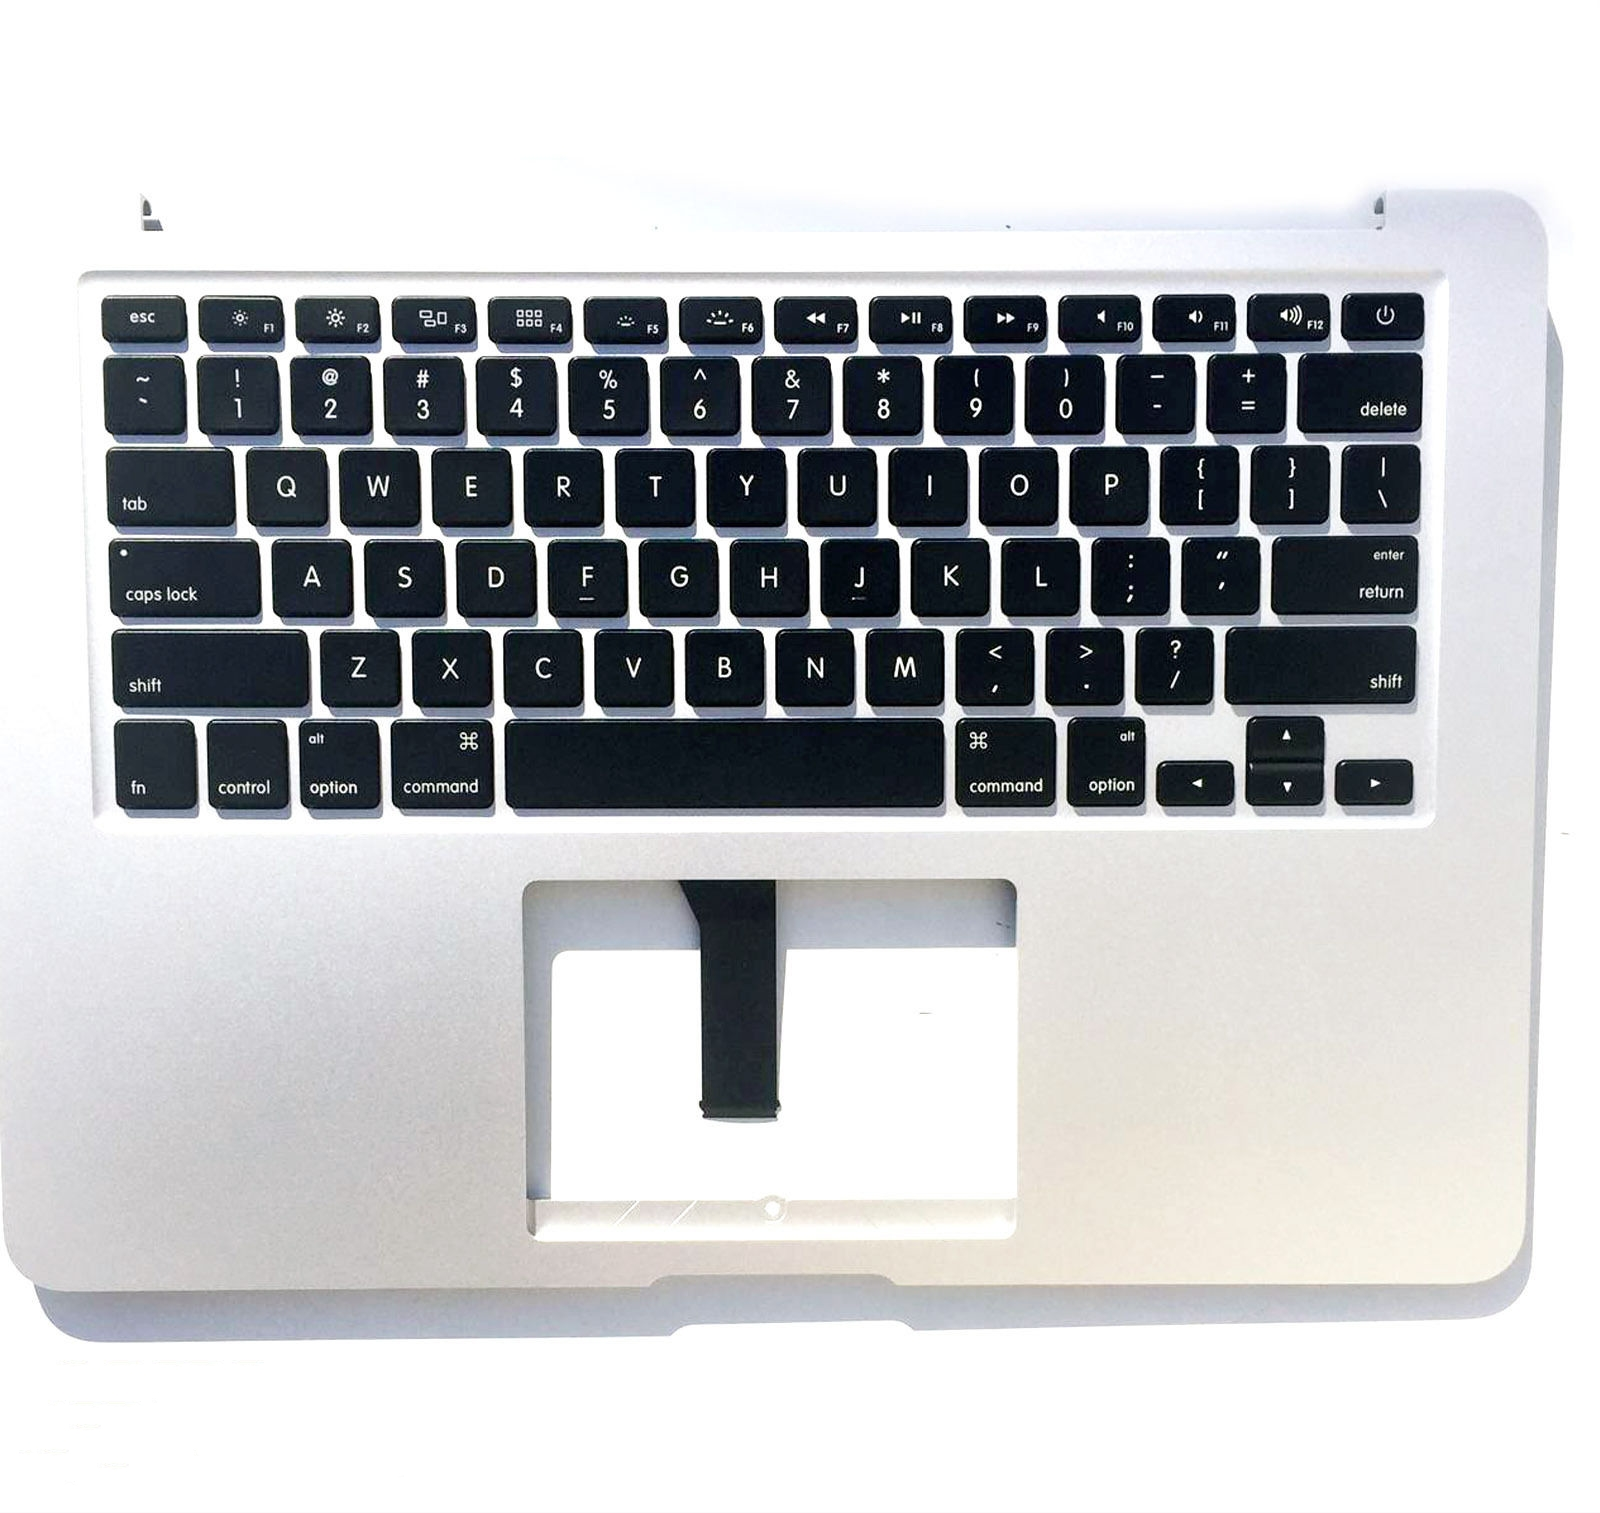 NEW Top Case Topcase Palmrest US Laptop Keyboard For MacBook Air 13 A1466 2013 2014 2015 laptop parts for lenovo yoga 2 13 yoga2 13 black palmrest with backlit sweden sw1 keyboard 90205189